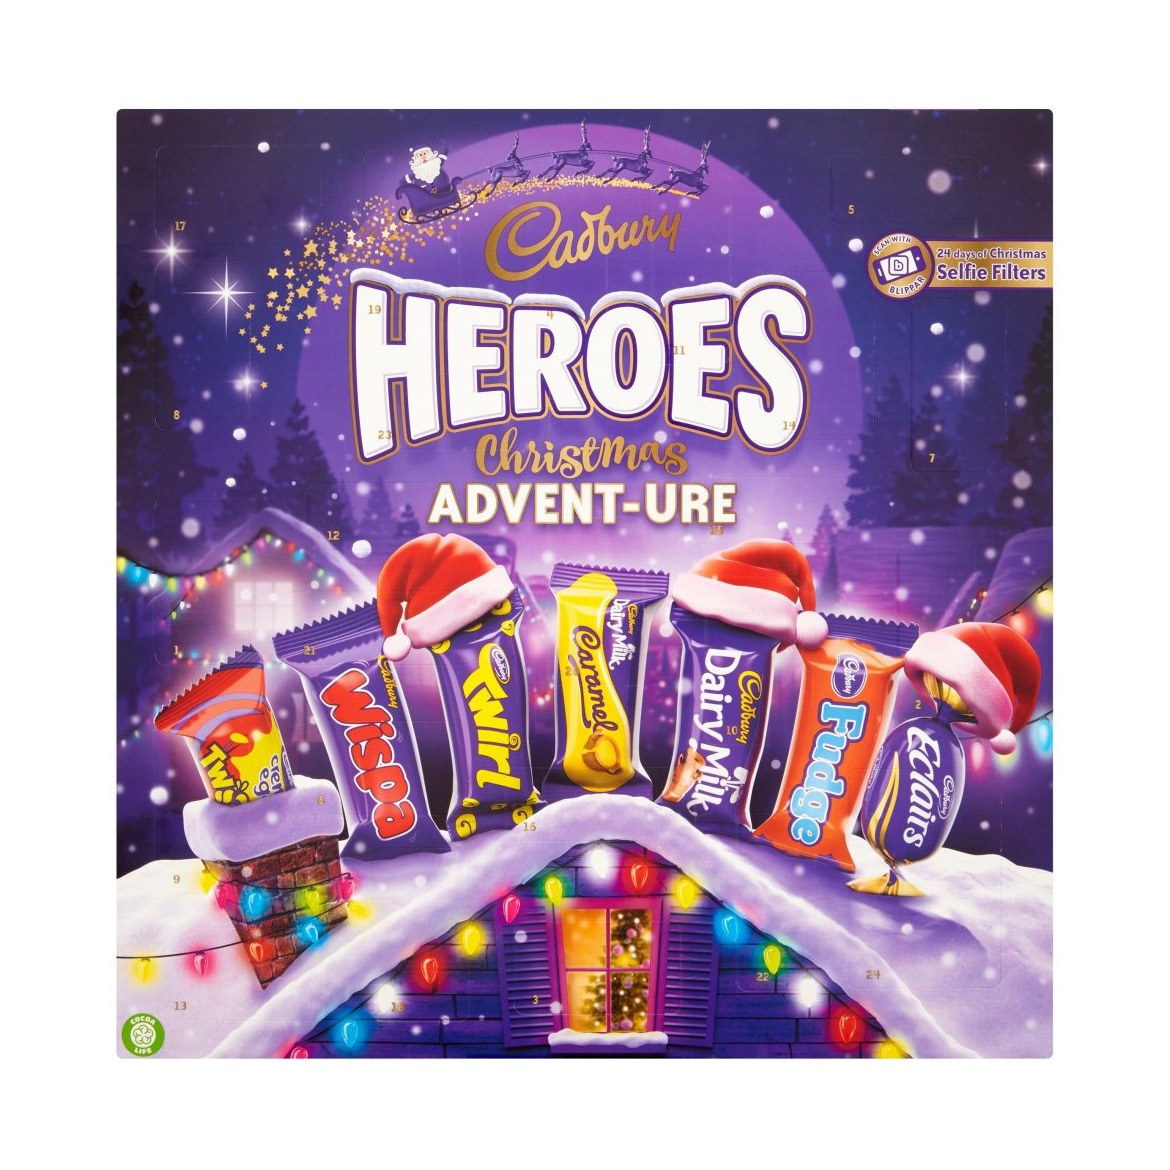 Best Advent Calendars 2019 - Chocolate Advent Calendar: Cadbury Dairy Milk Heroes Advent Calendar